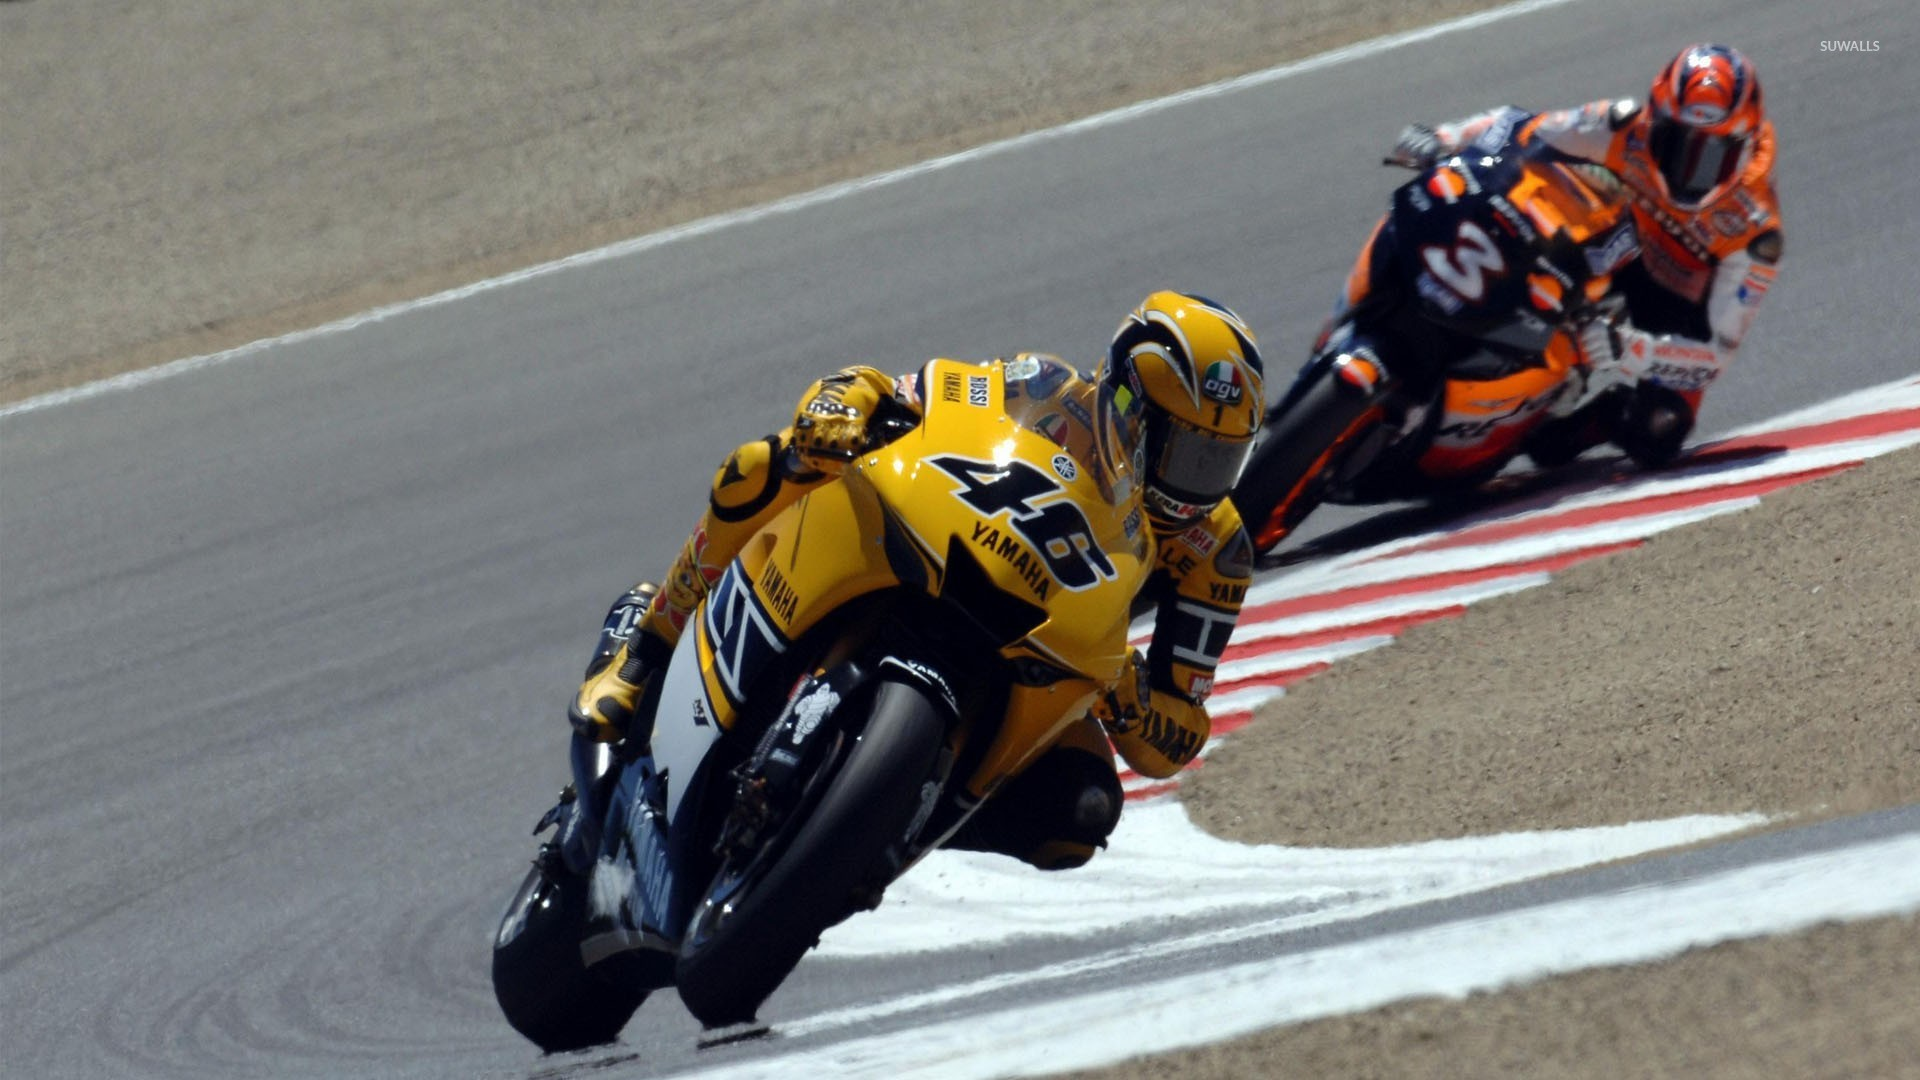 MotoGP 6 wallpaper Motorcycle wallpapers 29619